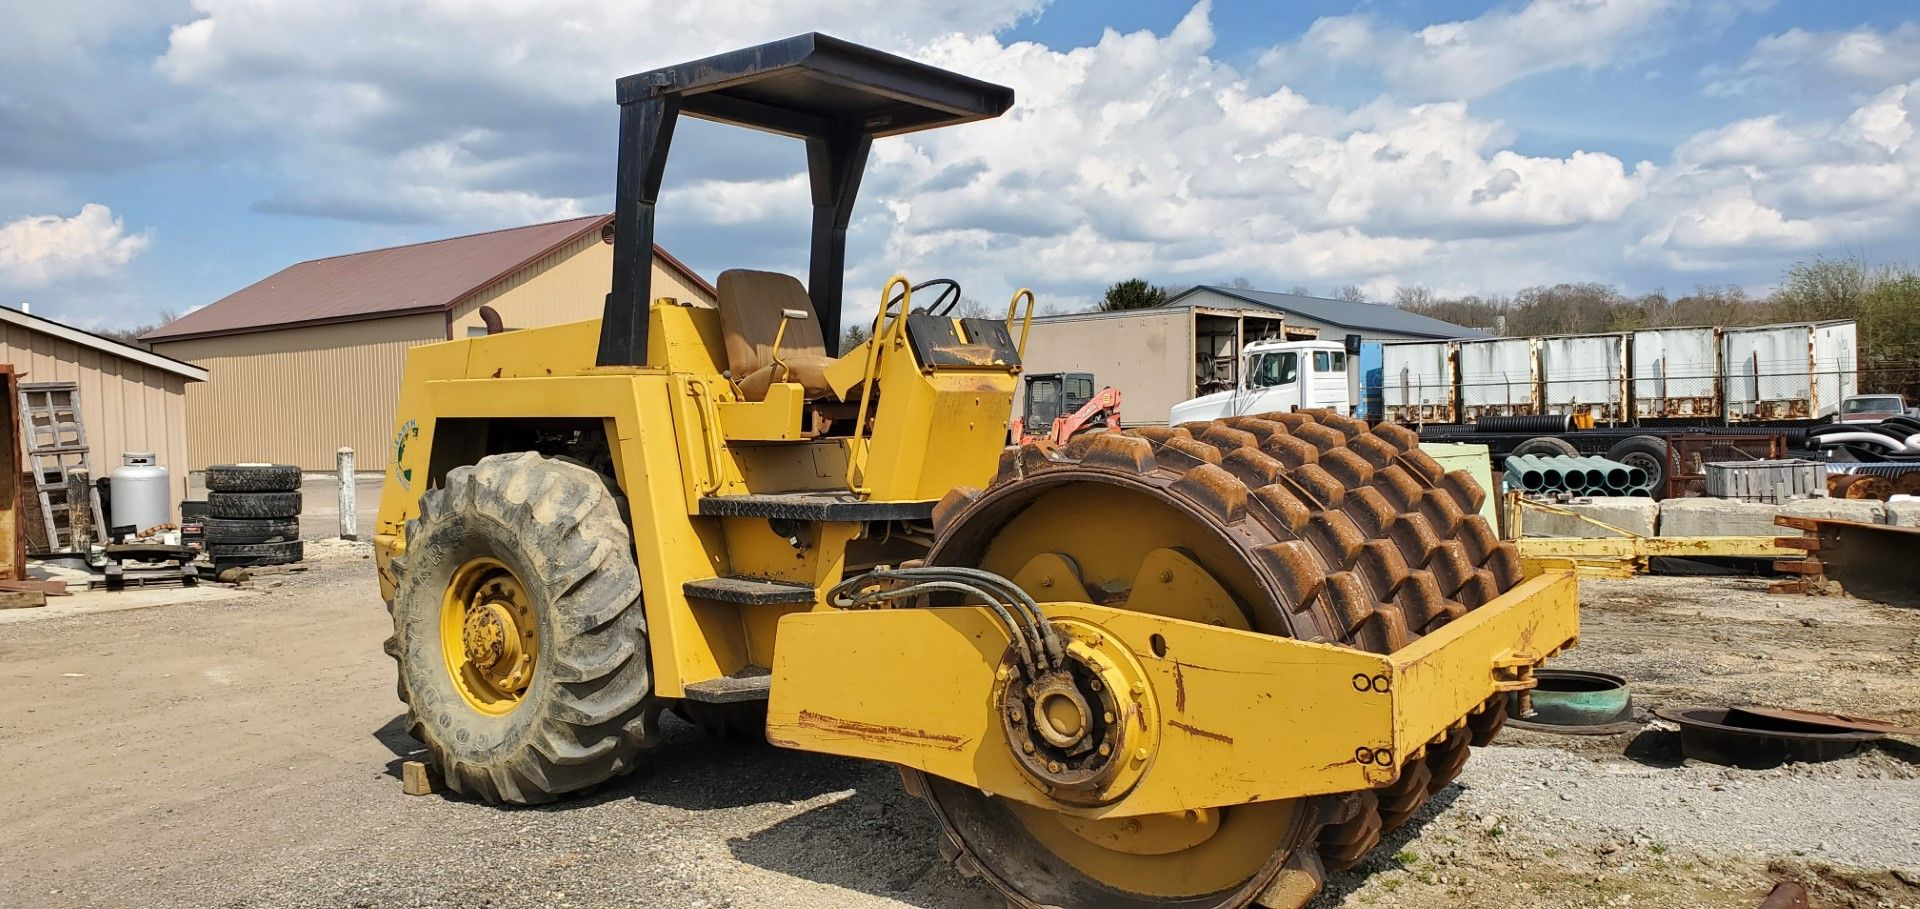 Lot 33 - Bomag Model BW 213 Vibratory Roller w/ Shell Kit, s/n 101400250137, 3016 Hours, Deitz Diesel